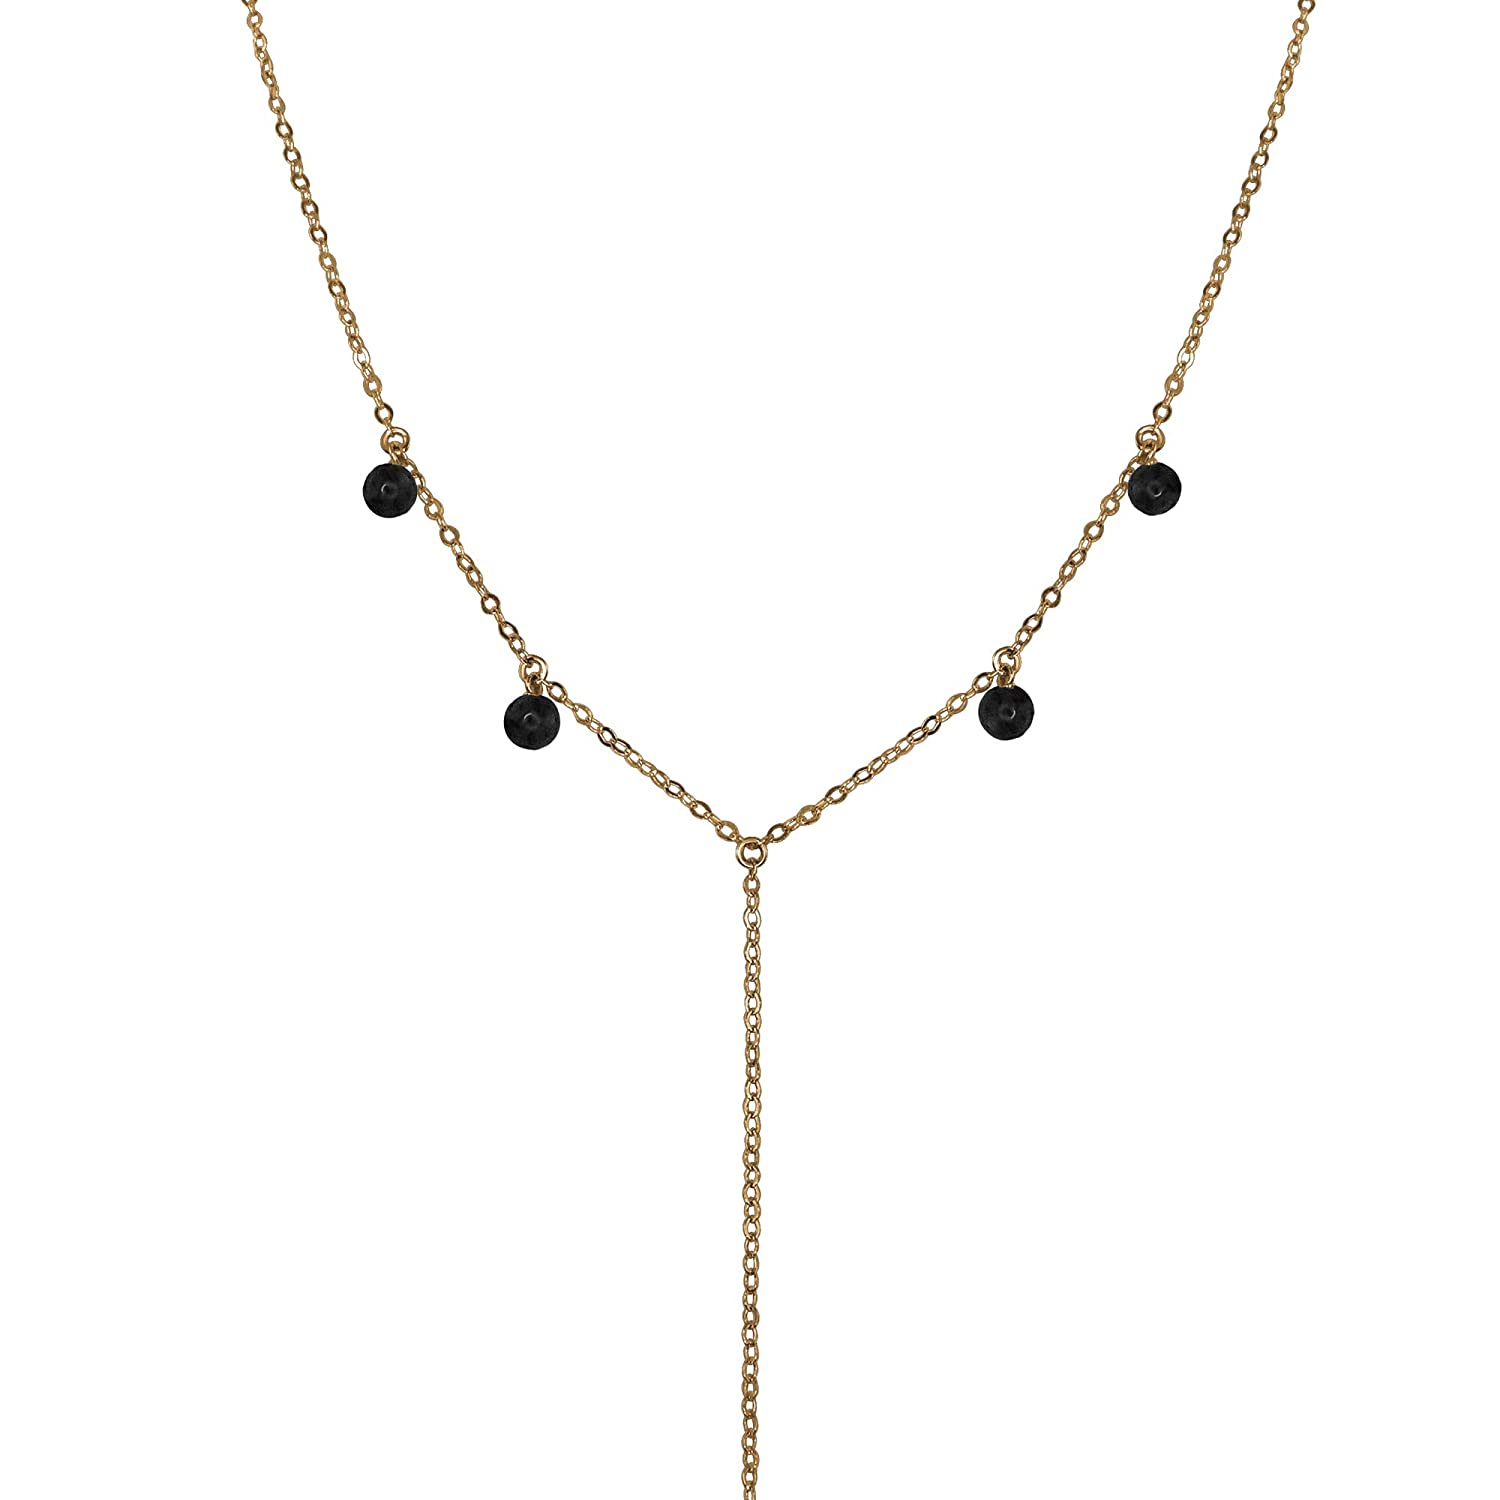 Max 89% OFF Black Onyx Boho Y Bronze Large special price Necklace in